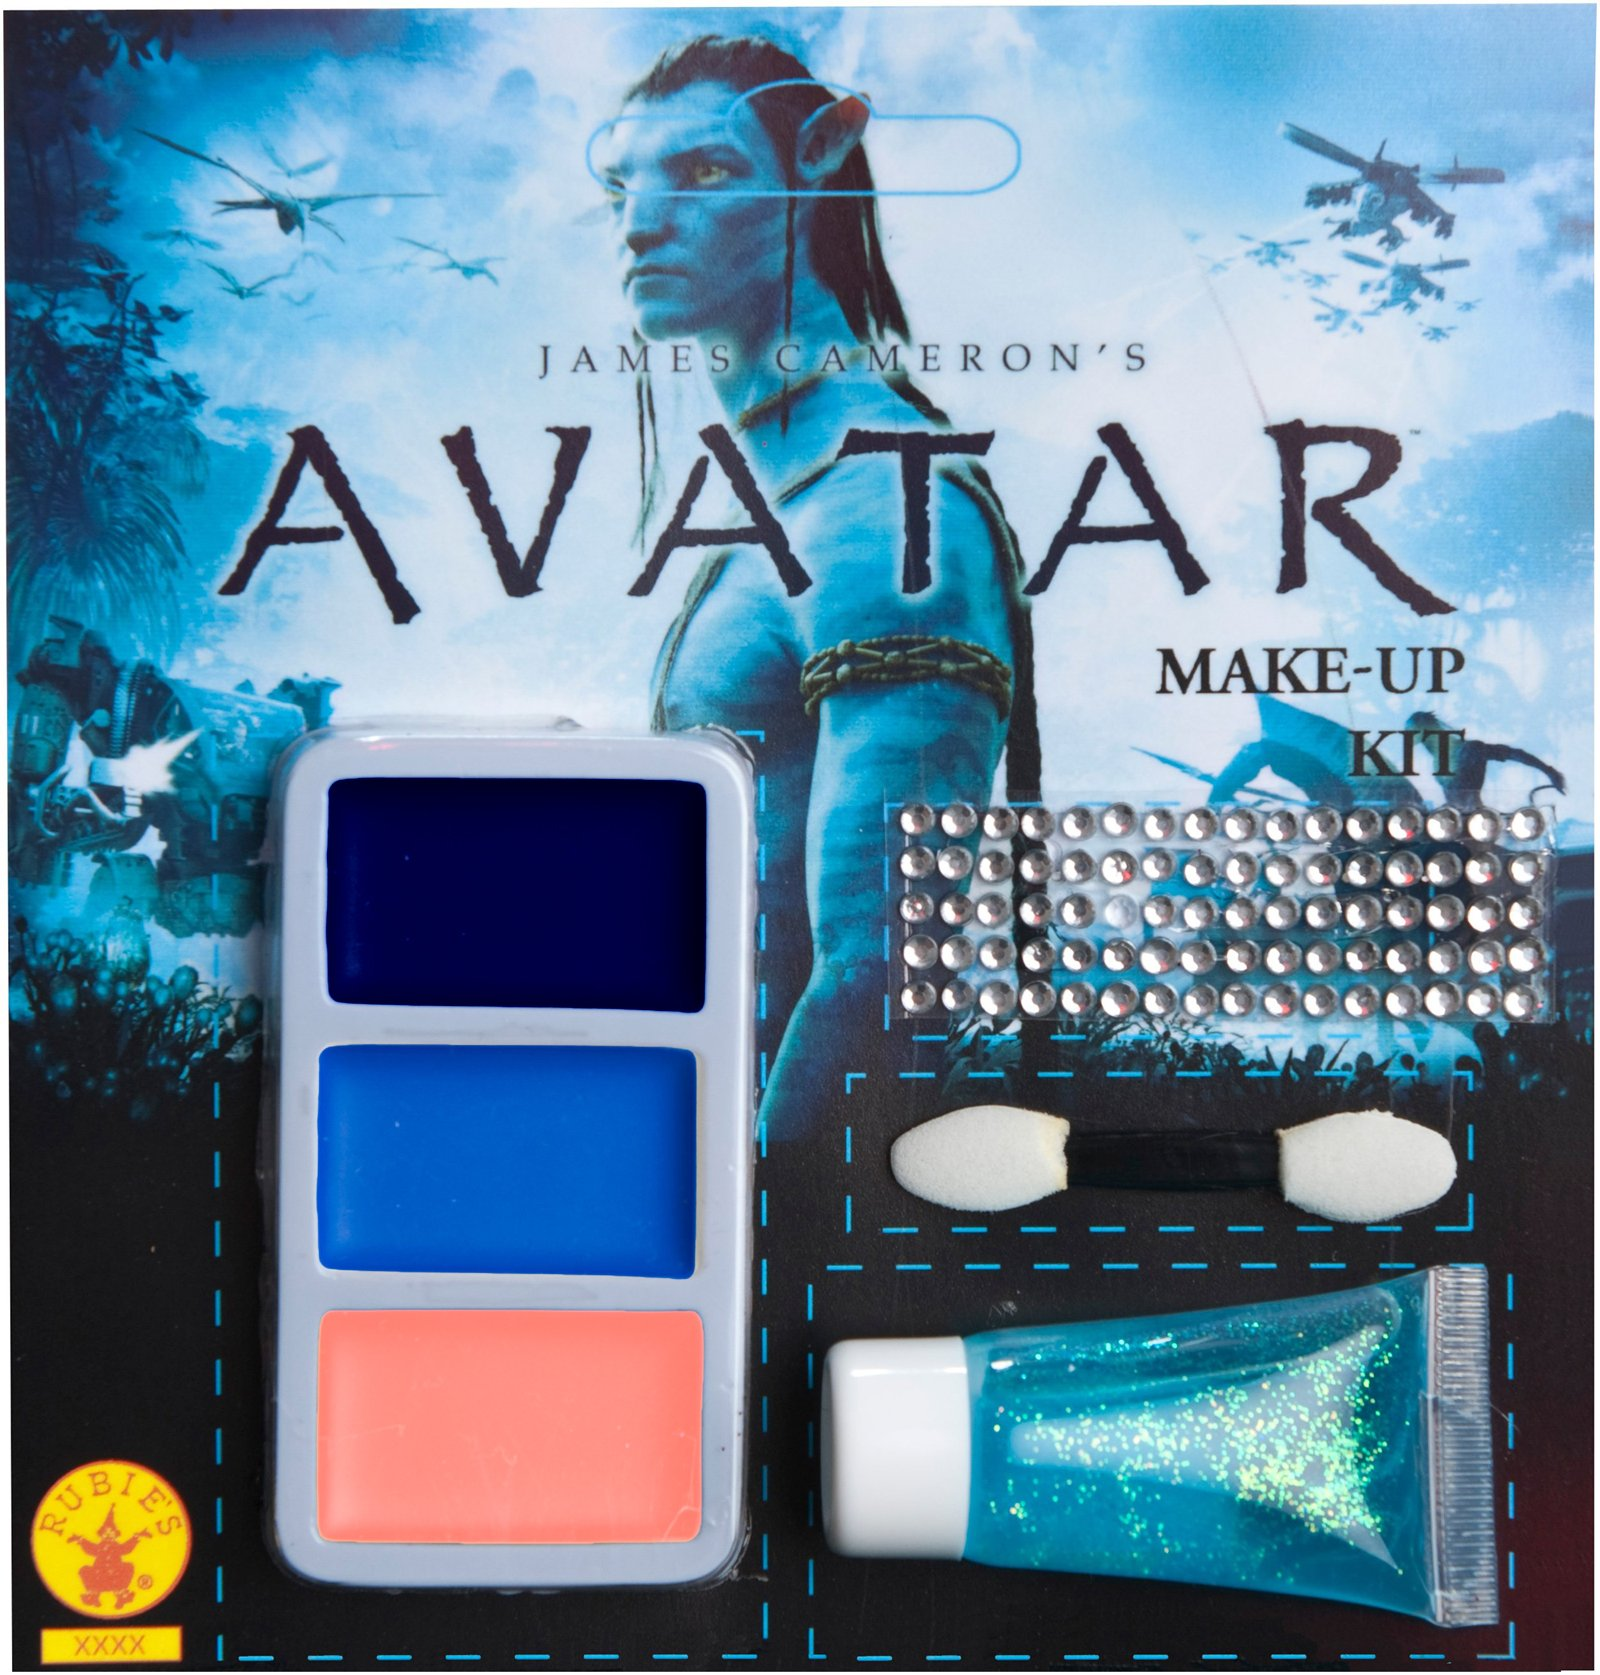 Avatar Movie Navi Avatar Make-Up Kit